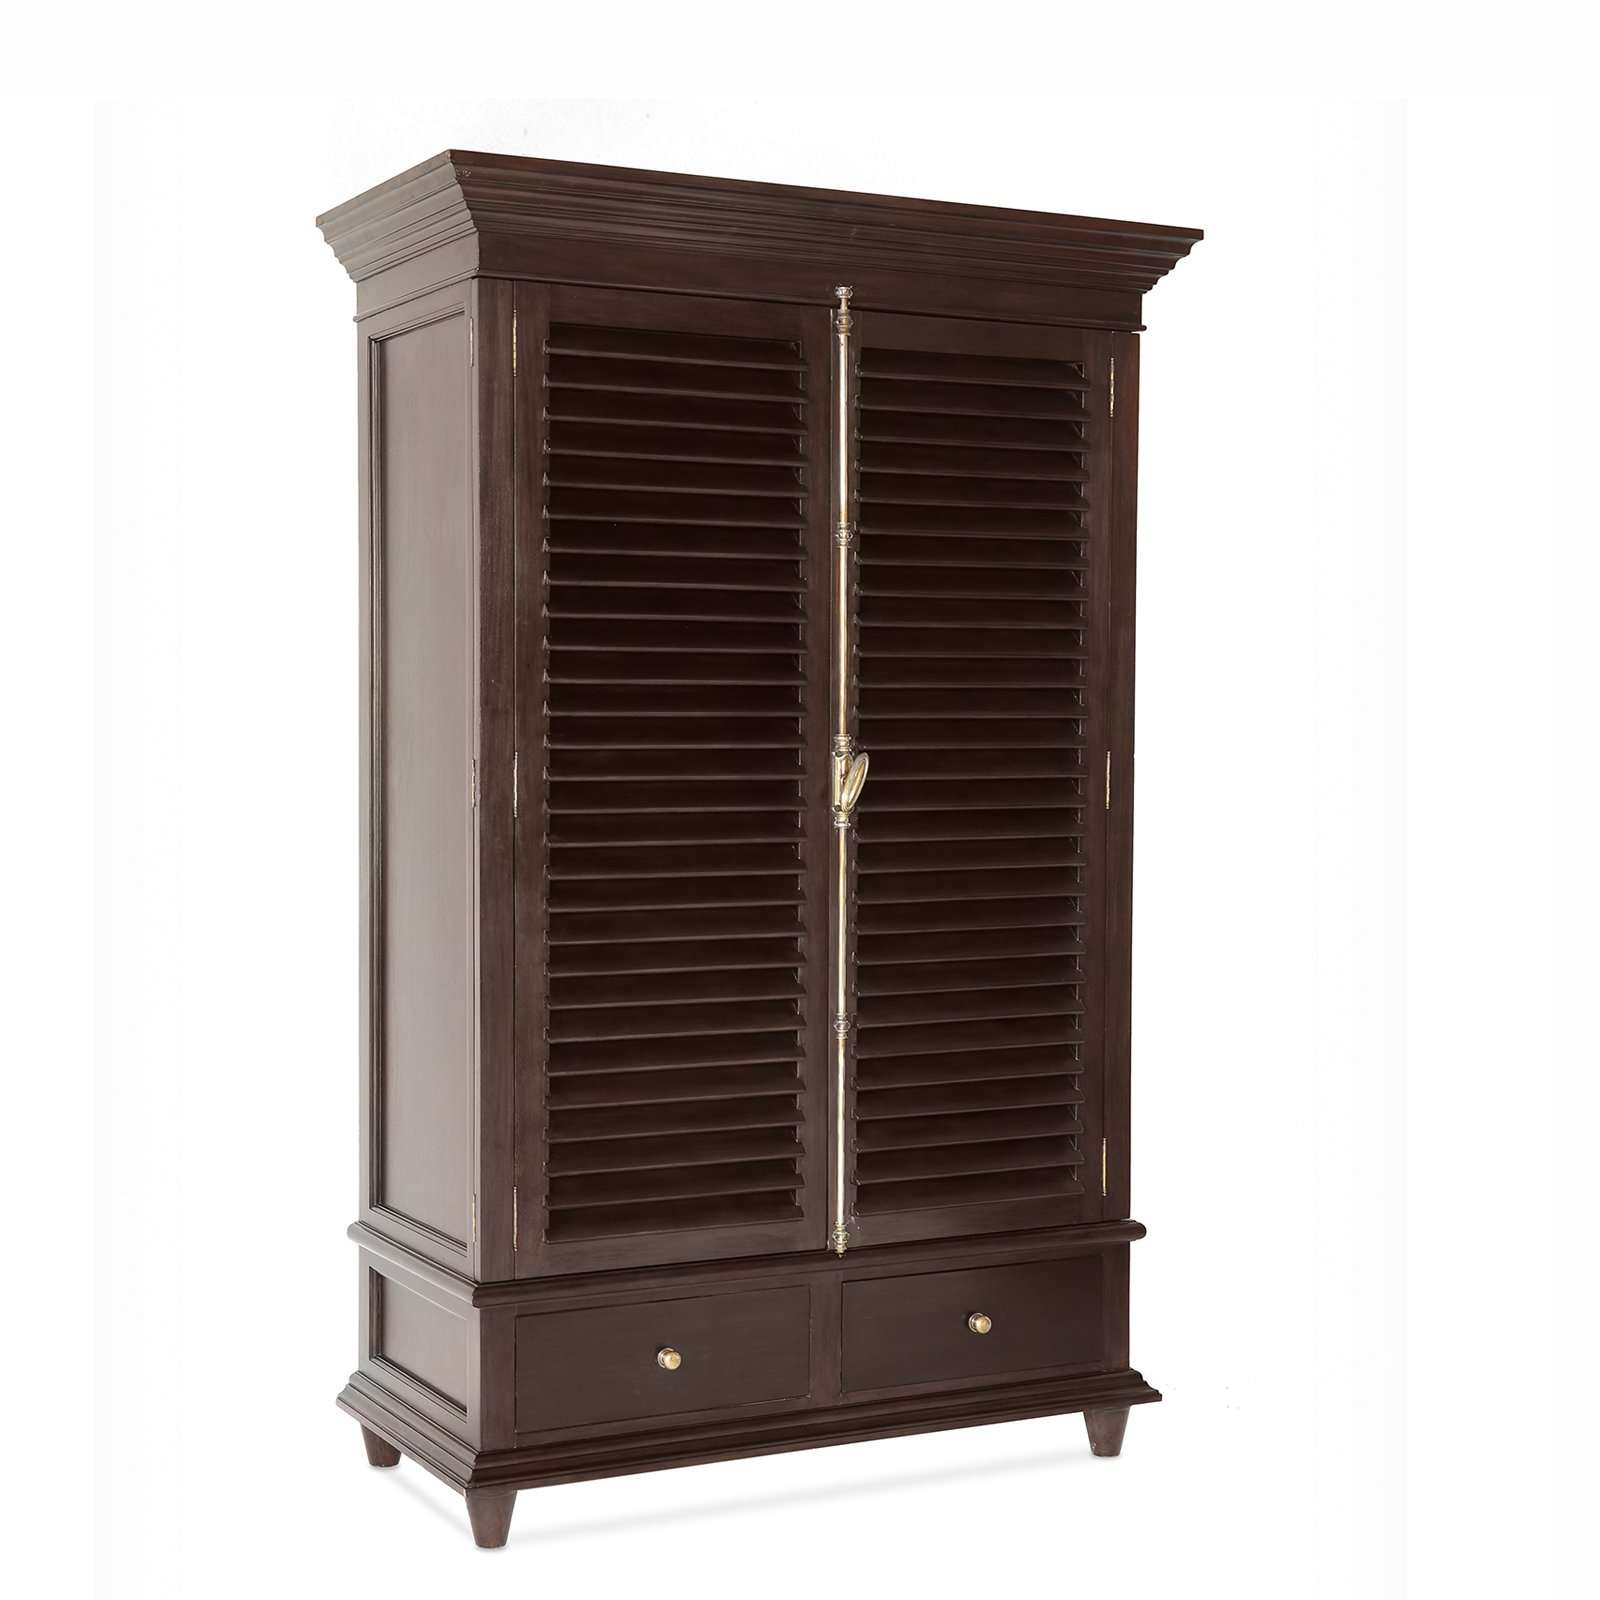 PLANTATION ARMOIRE 1 - STUART MEMBERY HOME COLLECTION